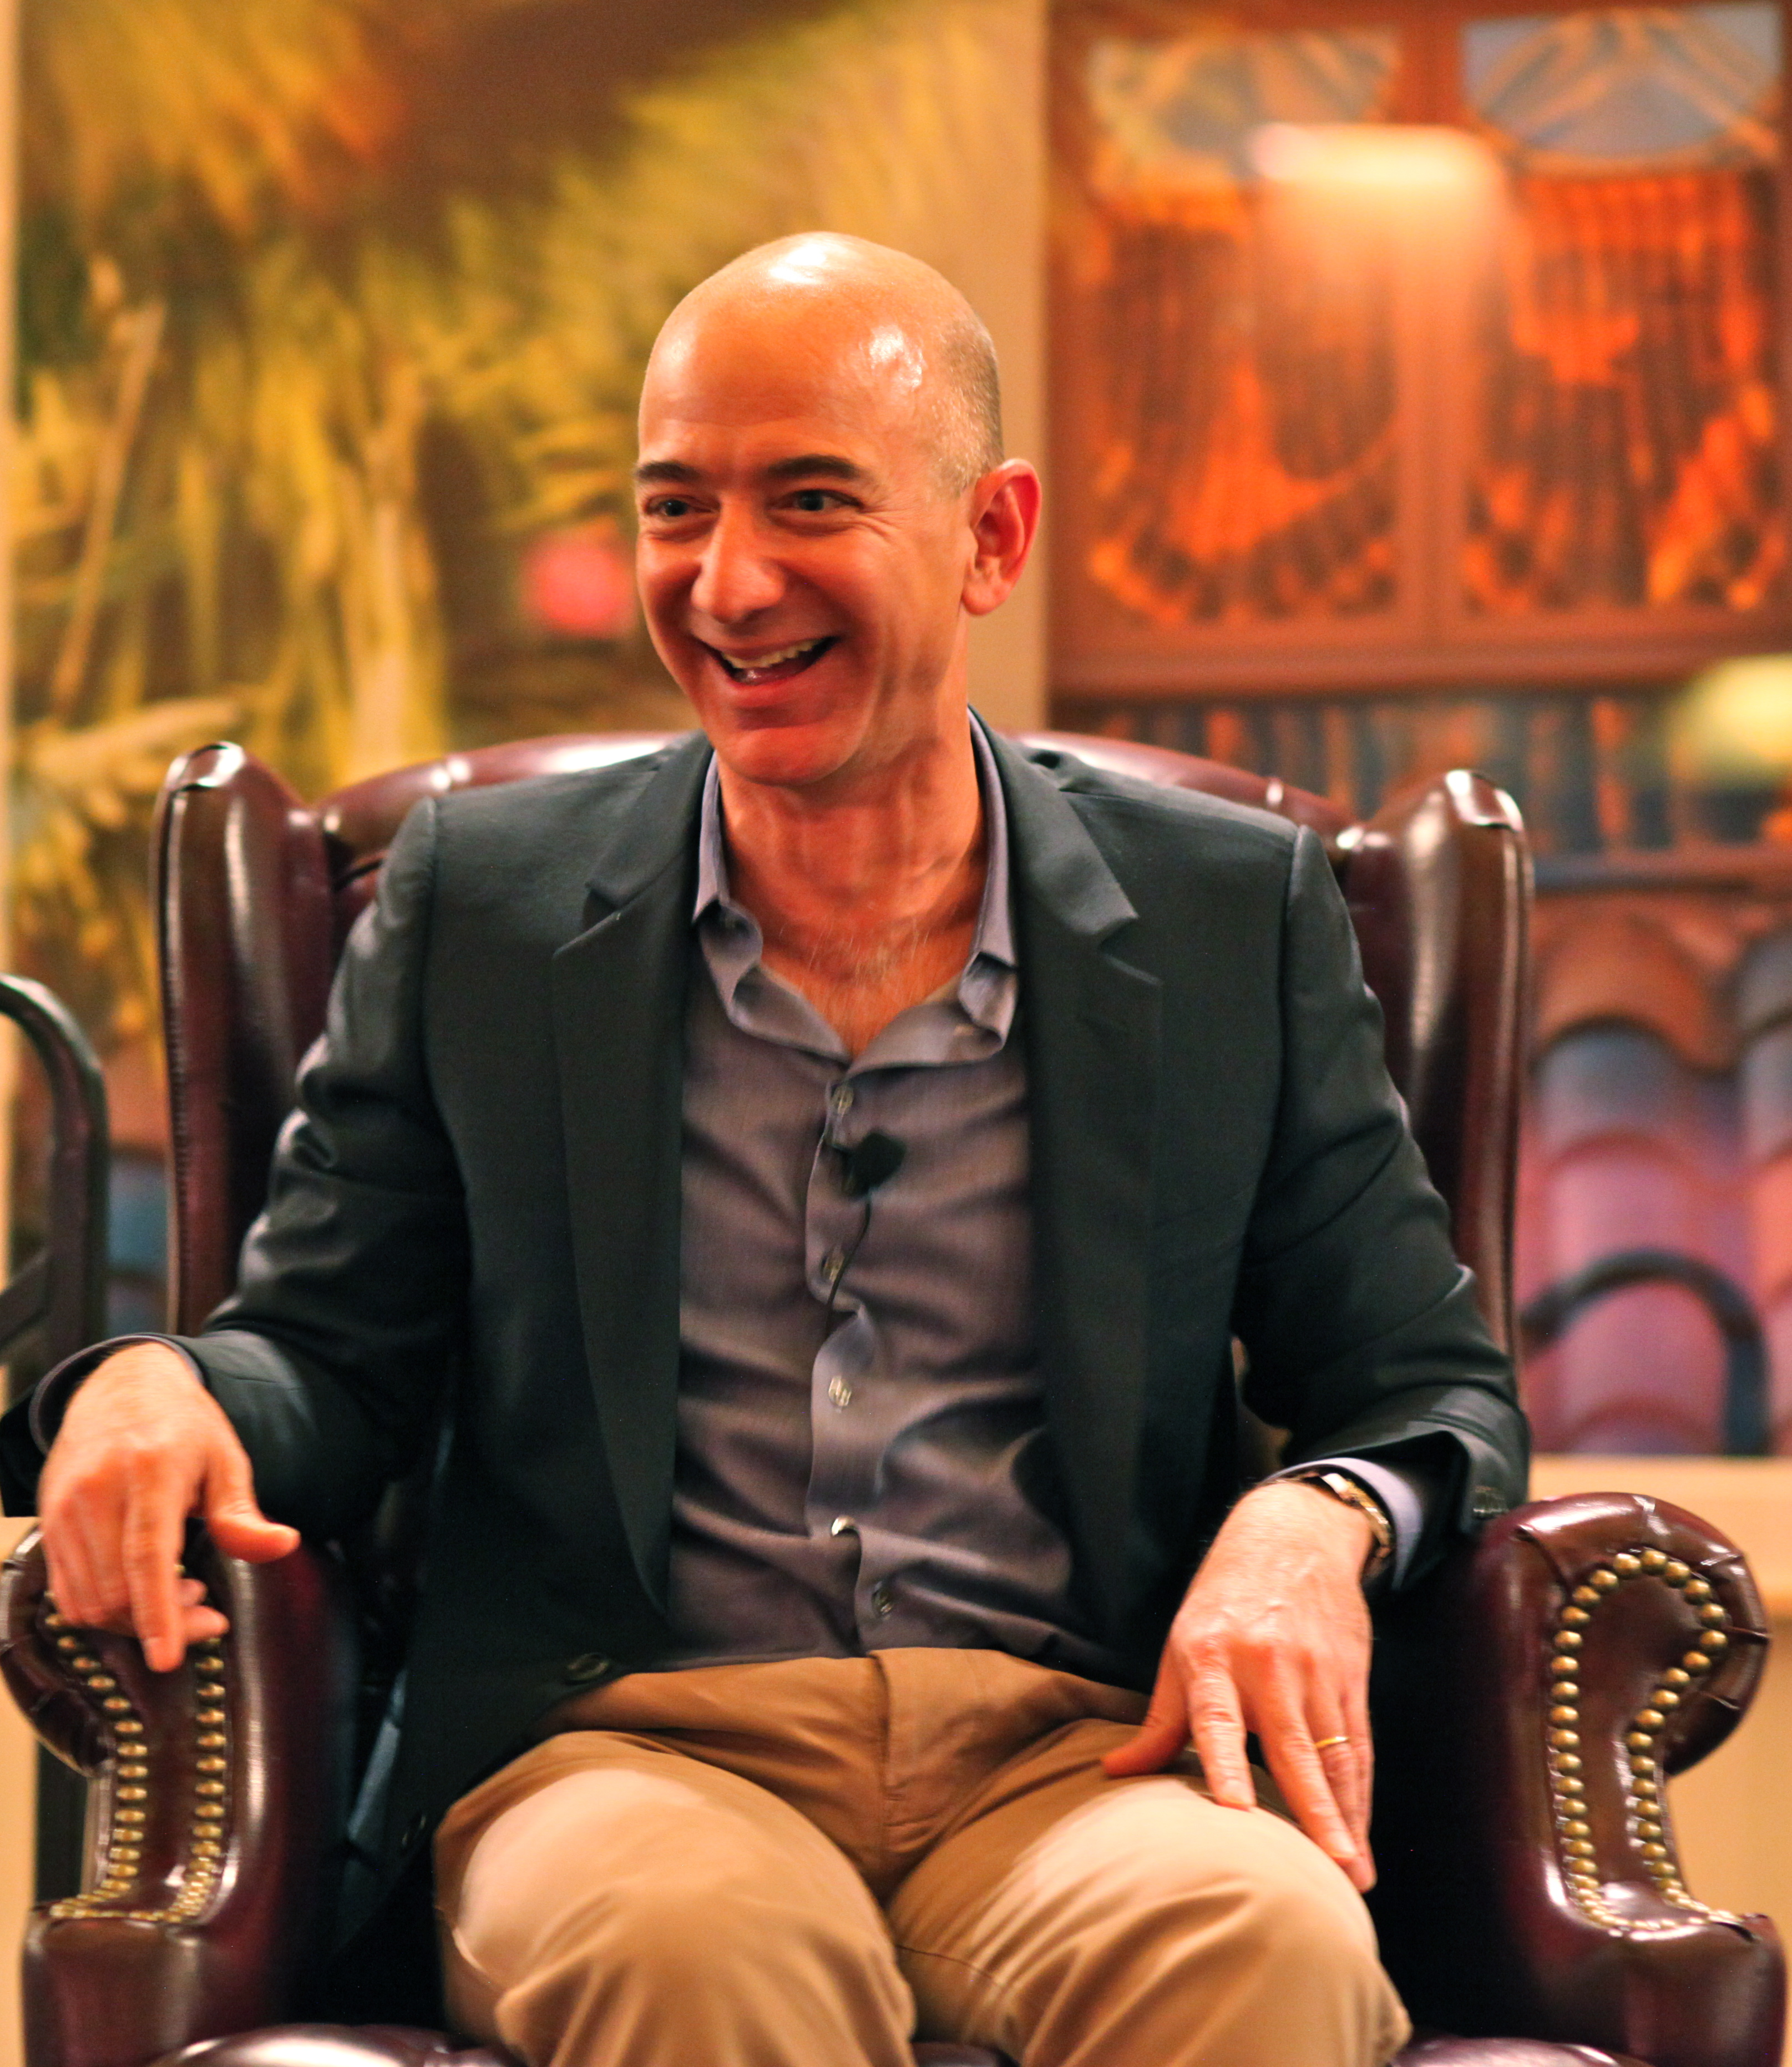 The first rule of Jeff Bezos's writers retreat is don't talk about Jeff Bezos's writers retreat